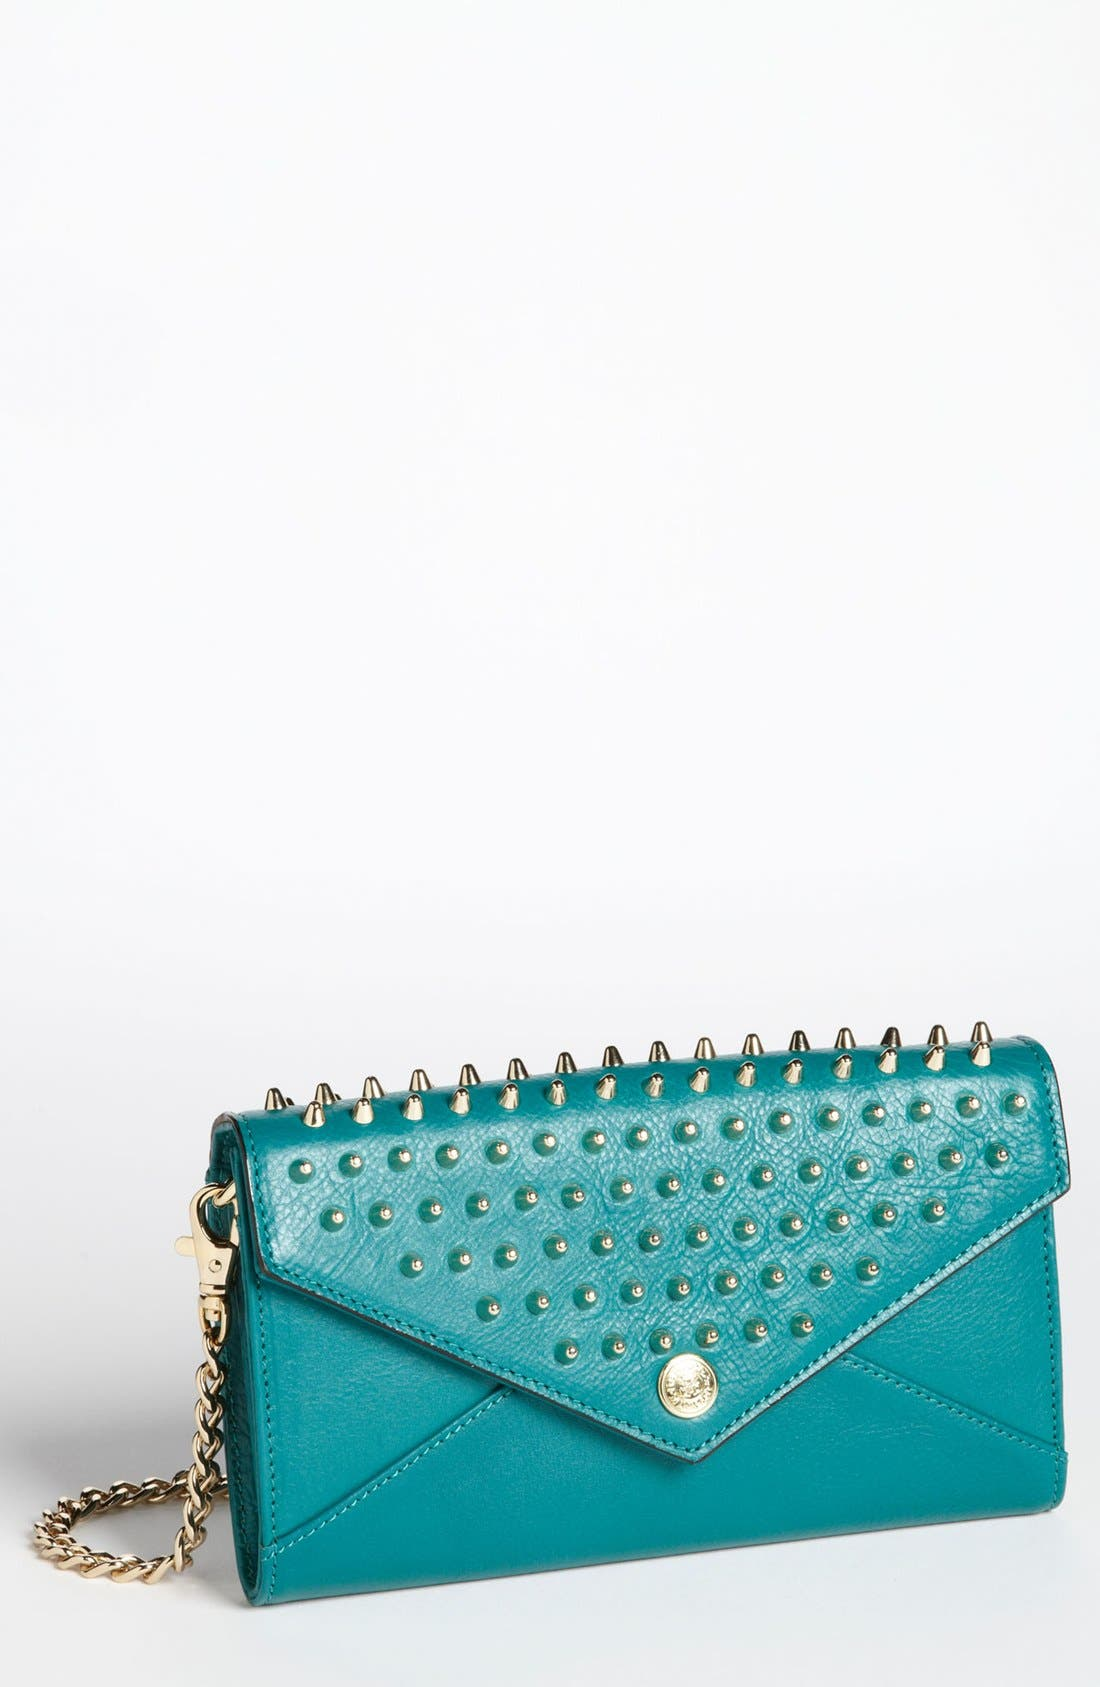 Main Image - Rebecca Minkoff 'Studded Wallet on a Chain' Crossbody Bag, Small